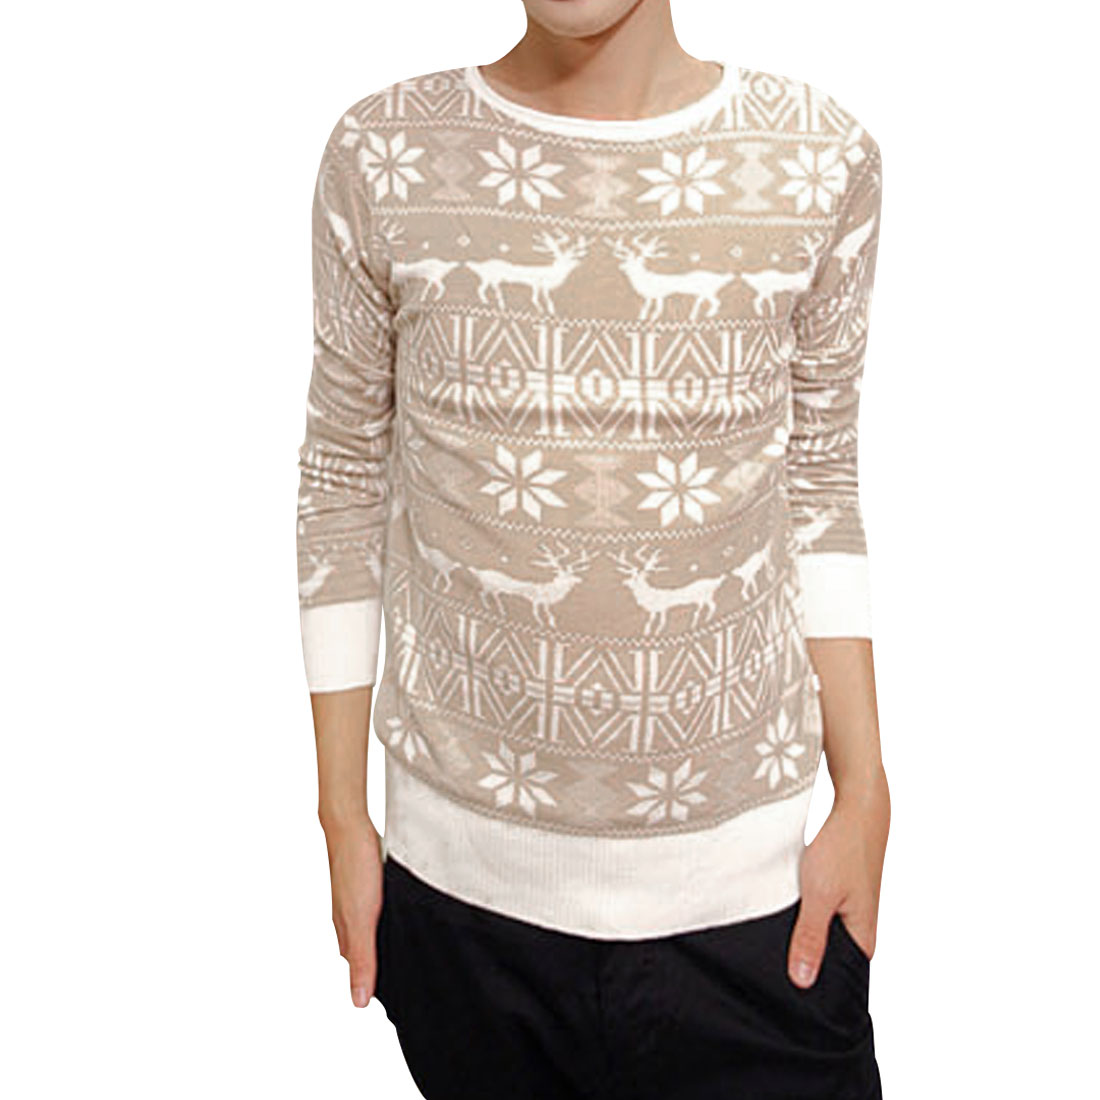 Mens Fashion Khaki White Long Sleeve Contrast Reindeer Pattern Knit Sweater S